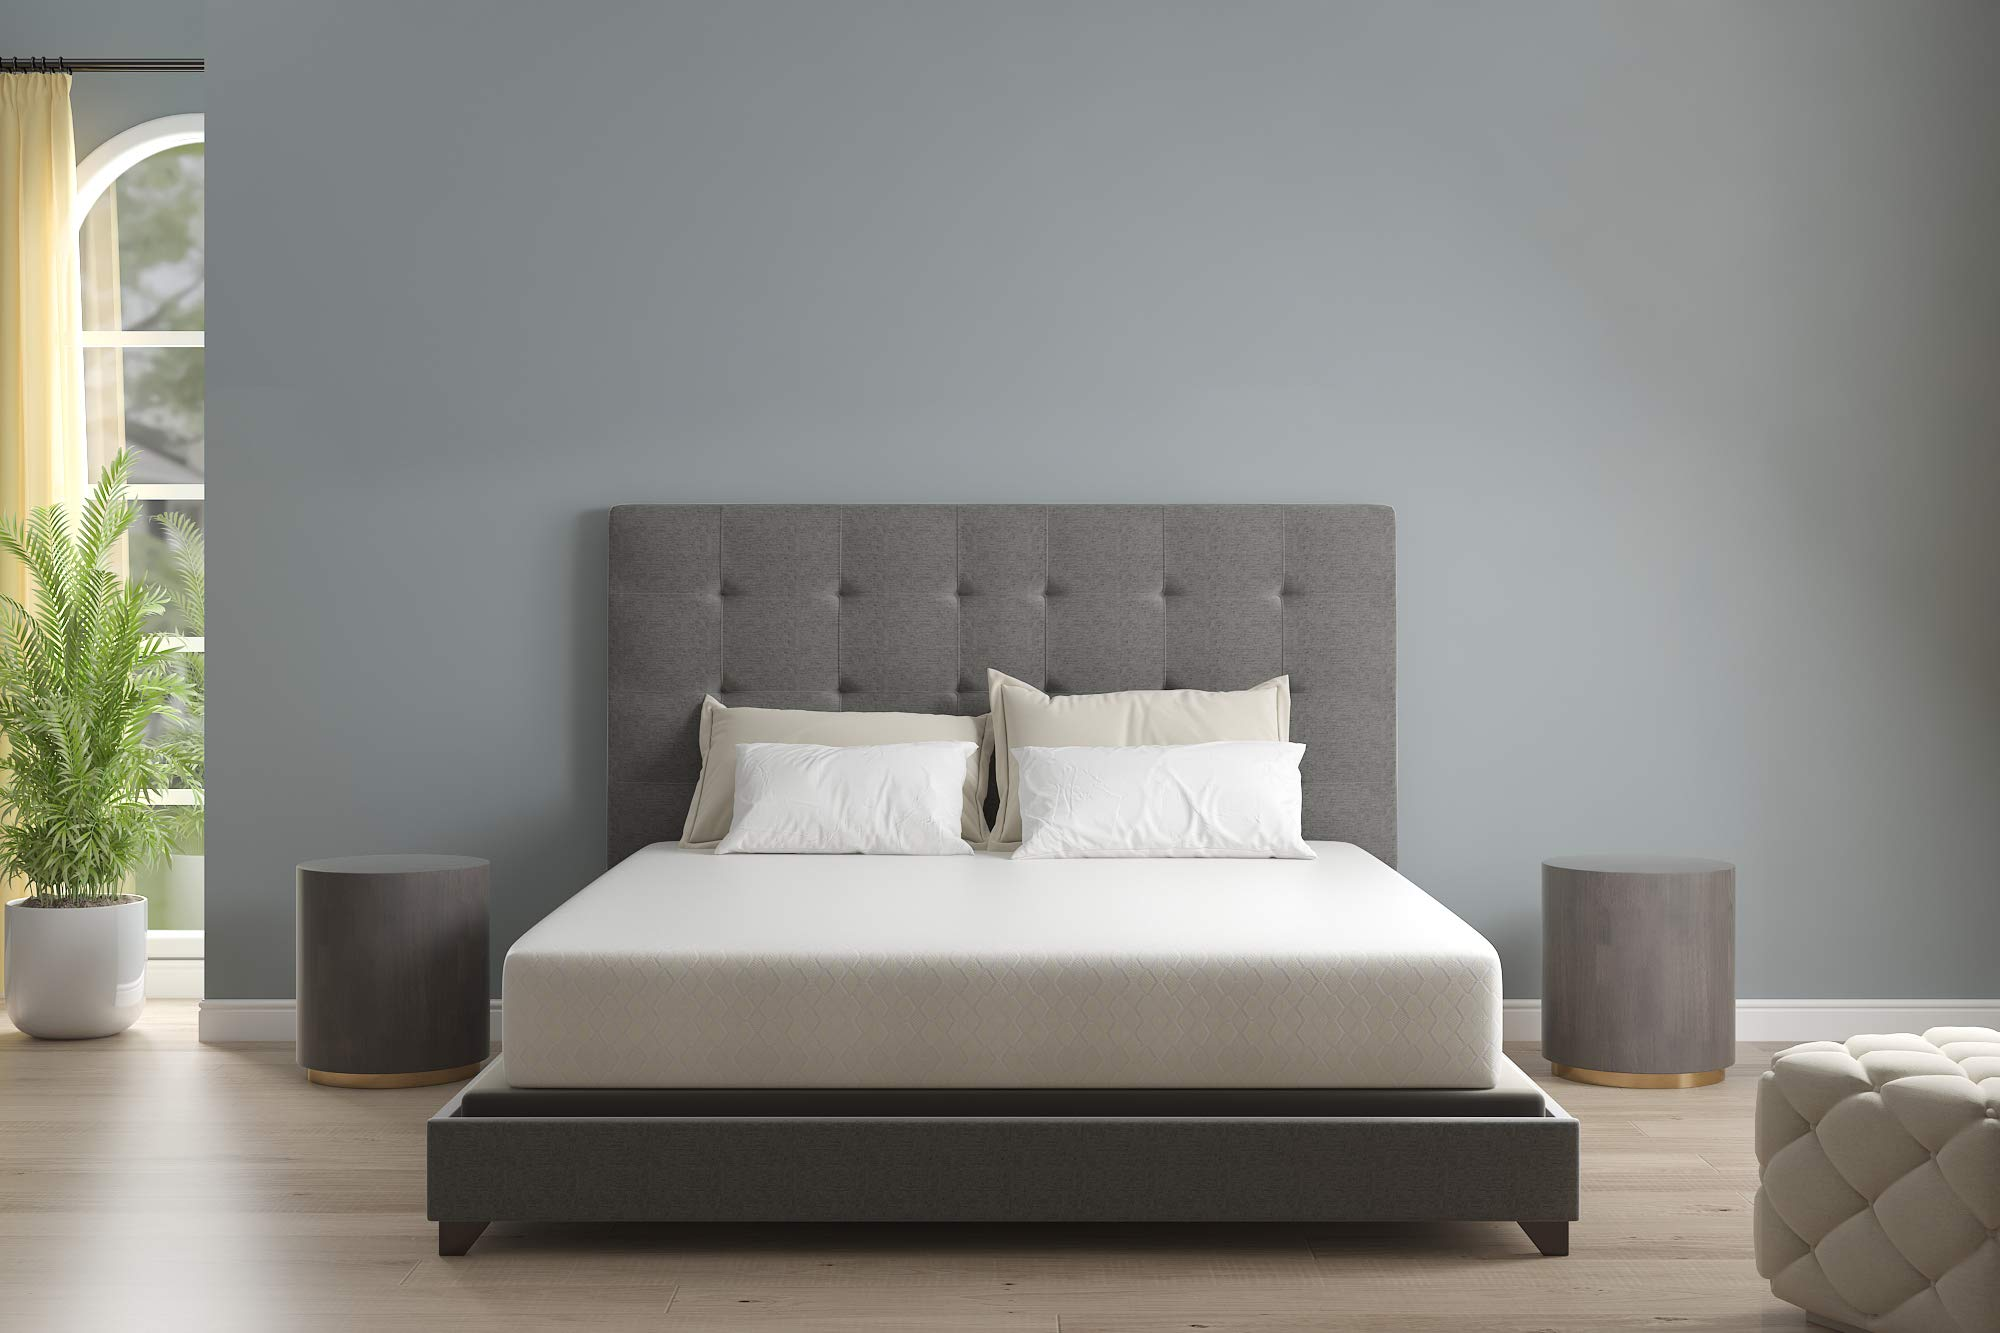 Signature Design by Ashley Mattress, Twin .1 Pack Hybrid (12″ Chime,)